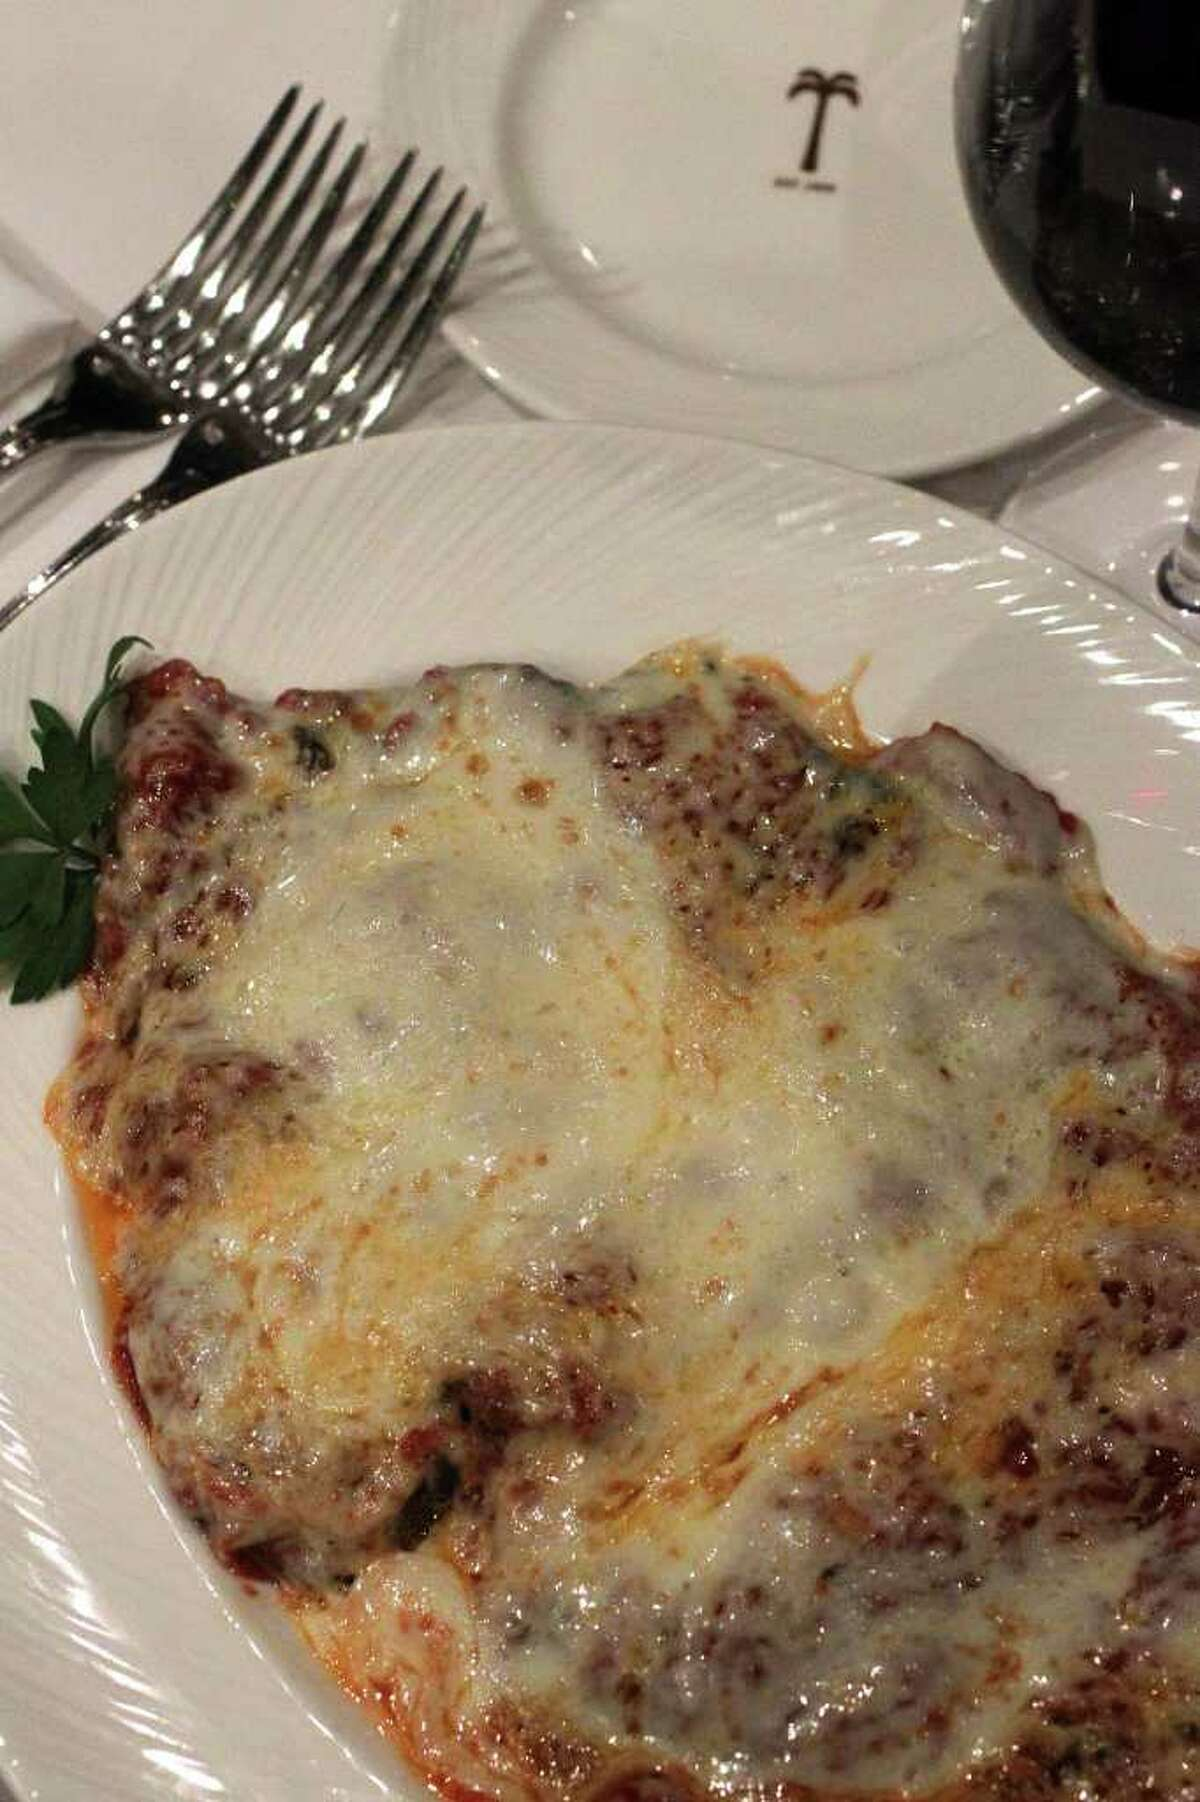 The Veal Parmigiana is served with the king of cheeses -- Parmigiano- Reggiano -- at The Palm Restaurant.